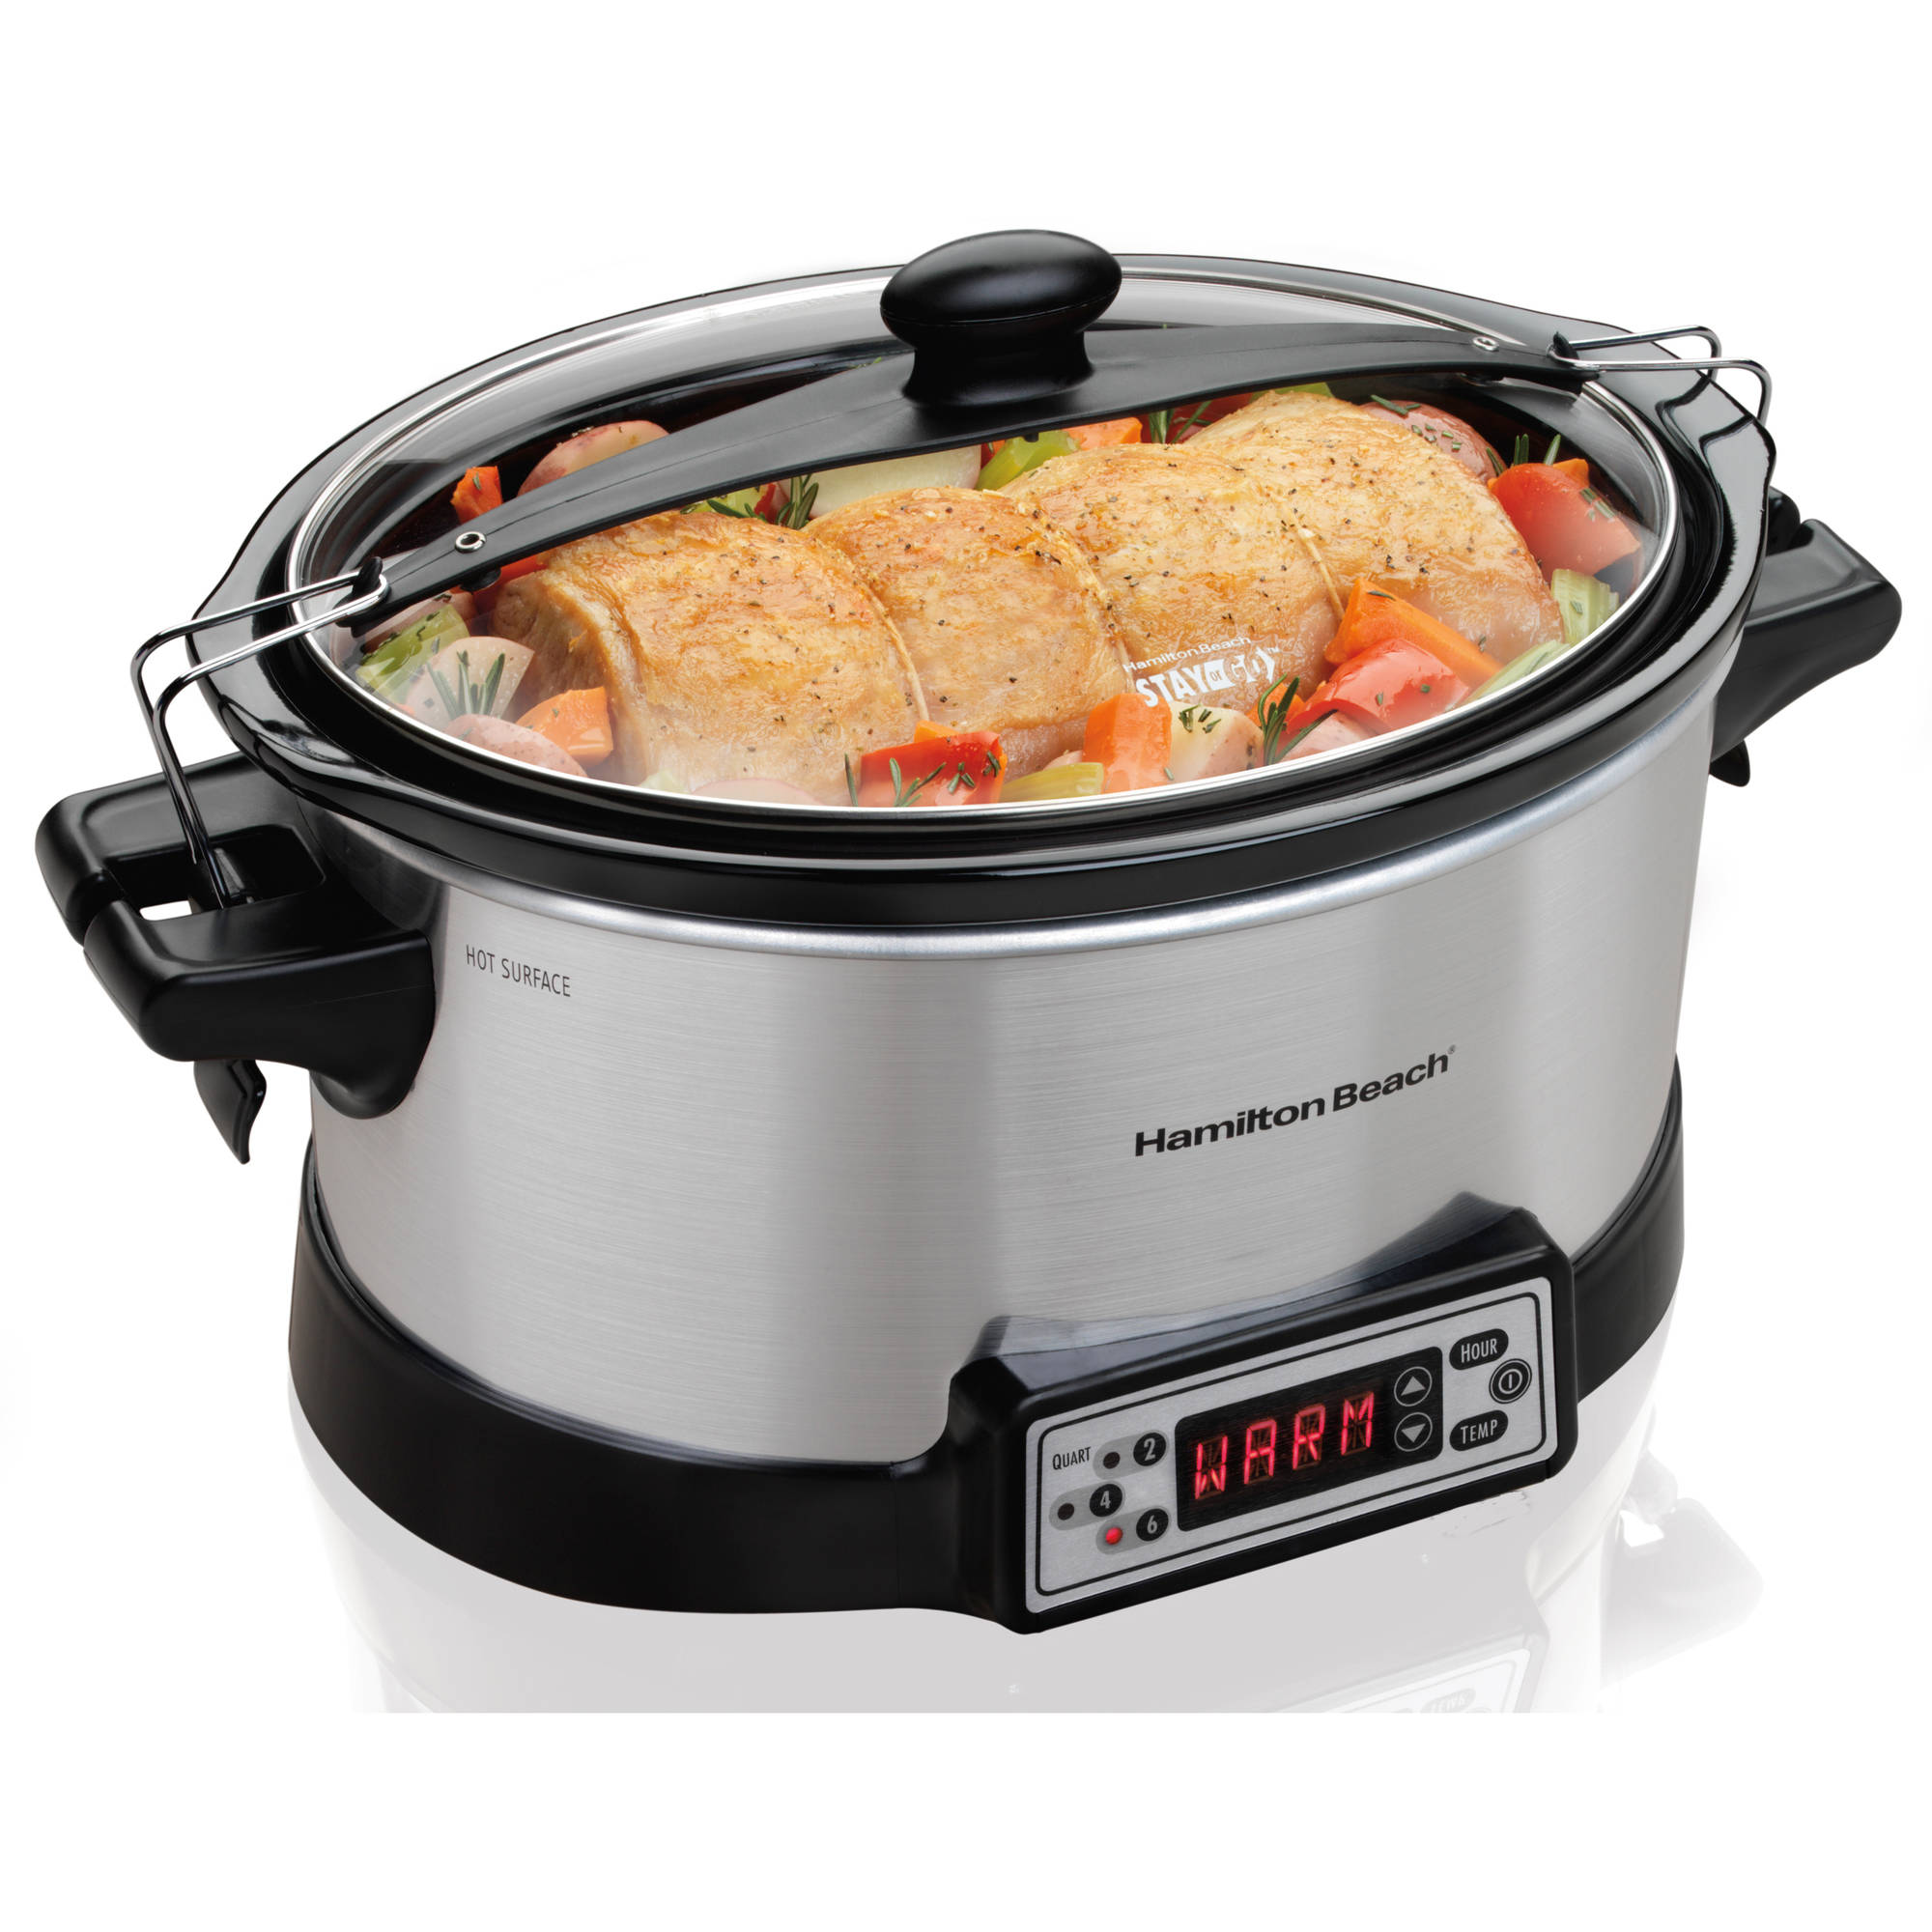 Hamilton Beach 6 Quart Programmable Right Size Slow Cooker | Model# 33642